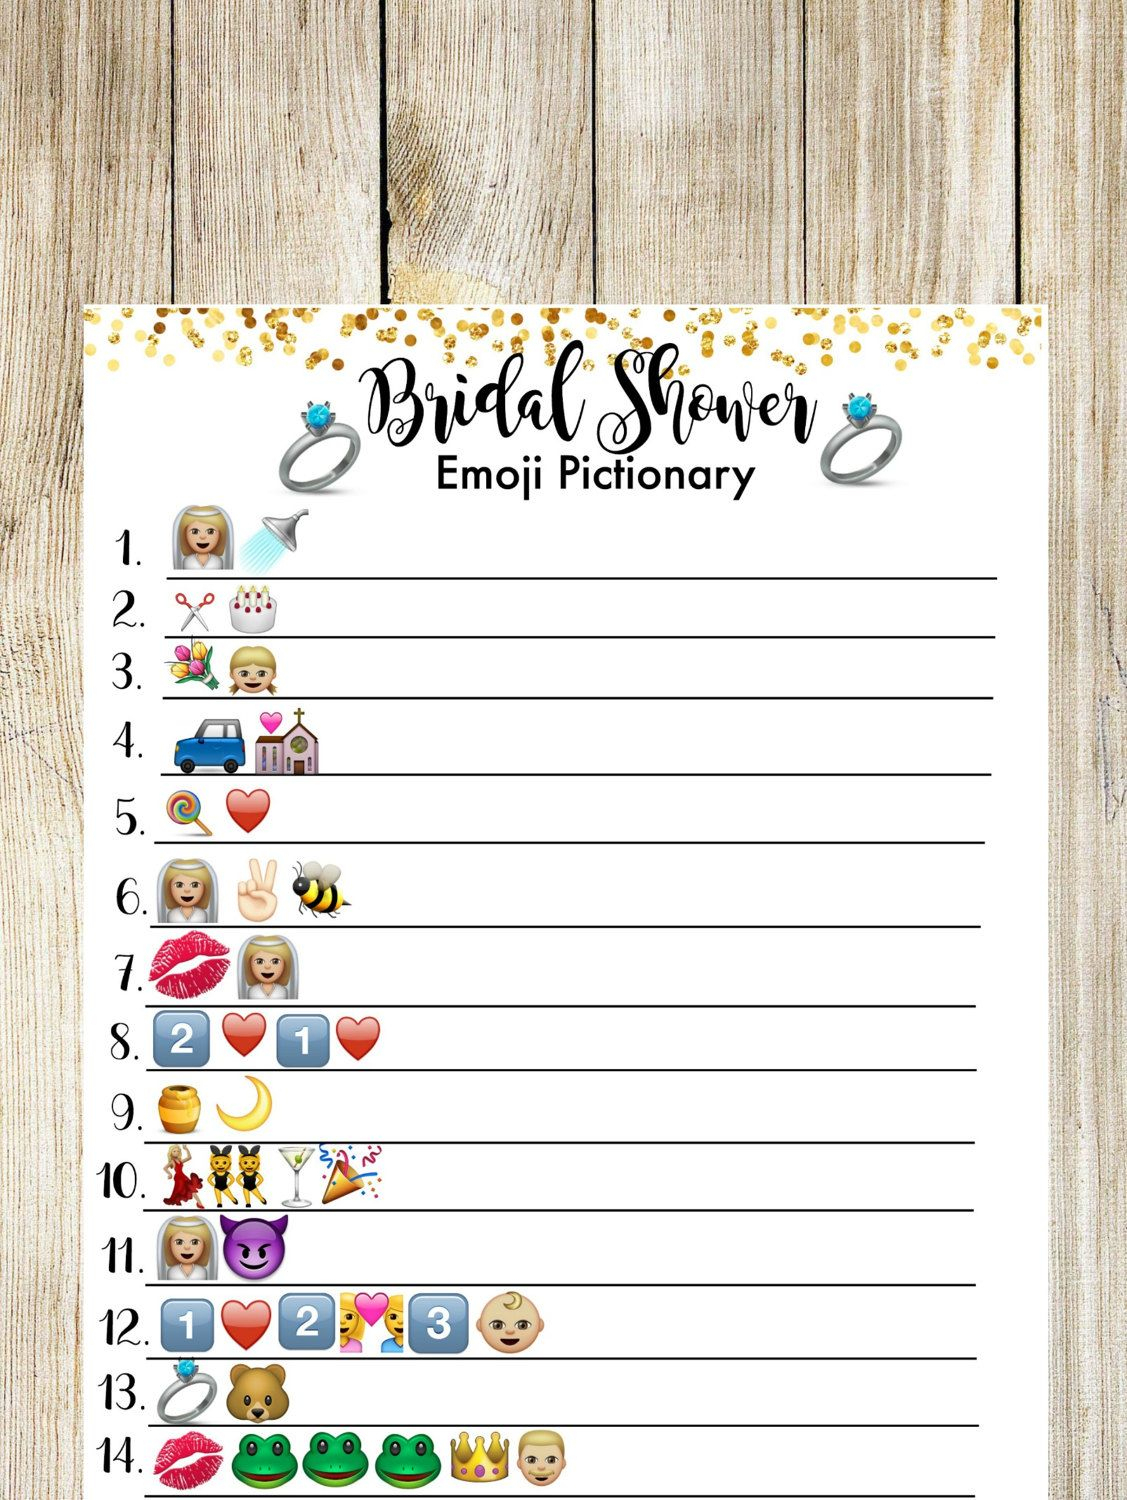 Bridal Shower Pictionary Emoji Game. Bridal Shower Game | Shower - Wedding Emoji Pictionary Free Printable